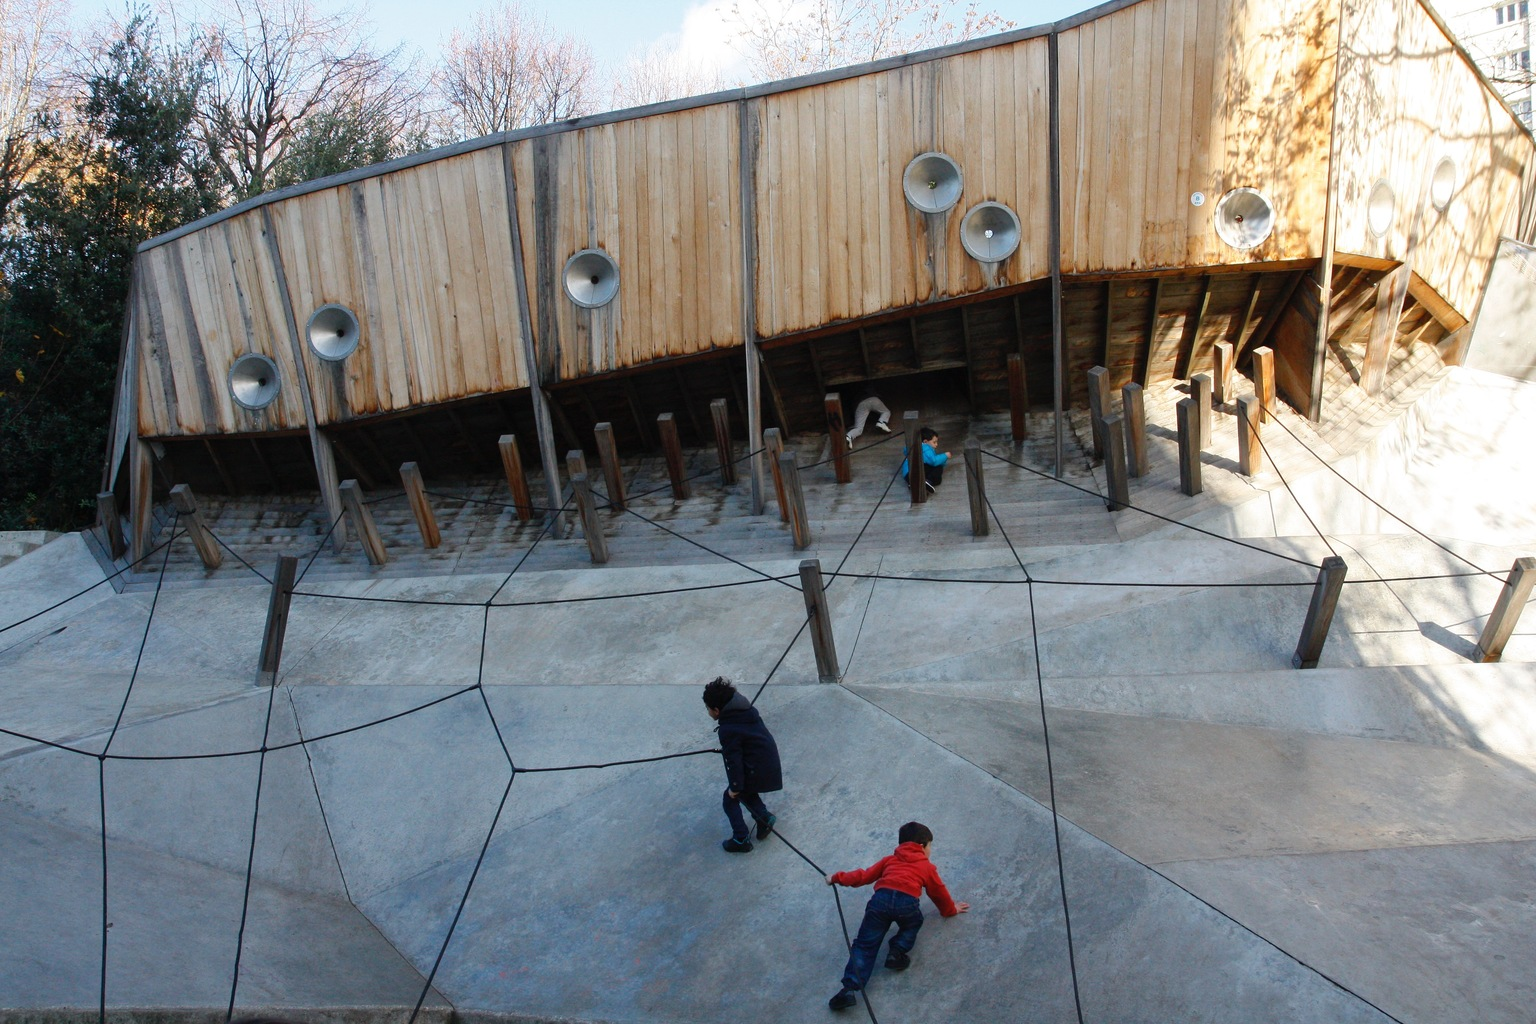 How to engage kids and community in playground design for Indoor playground design ideas